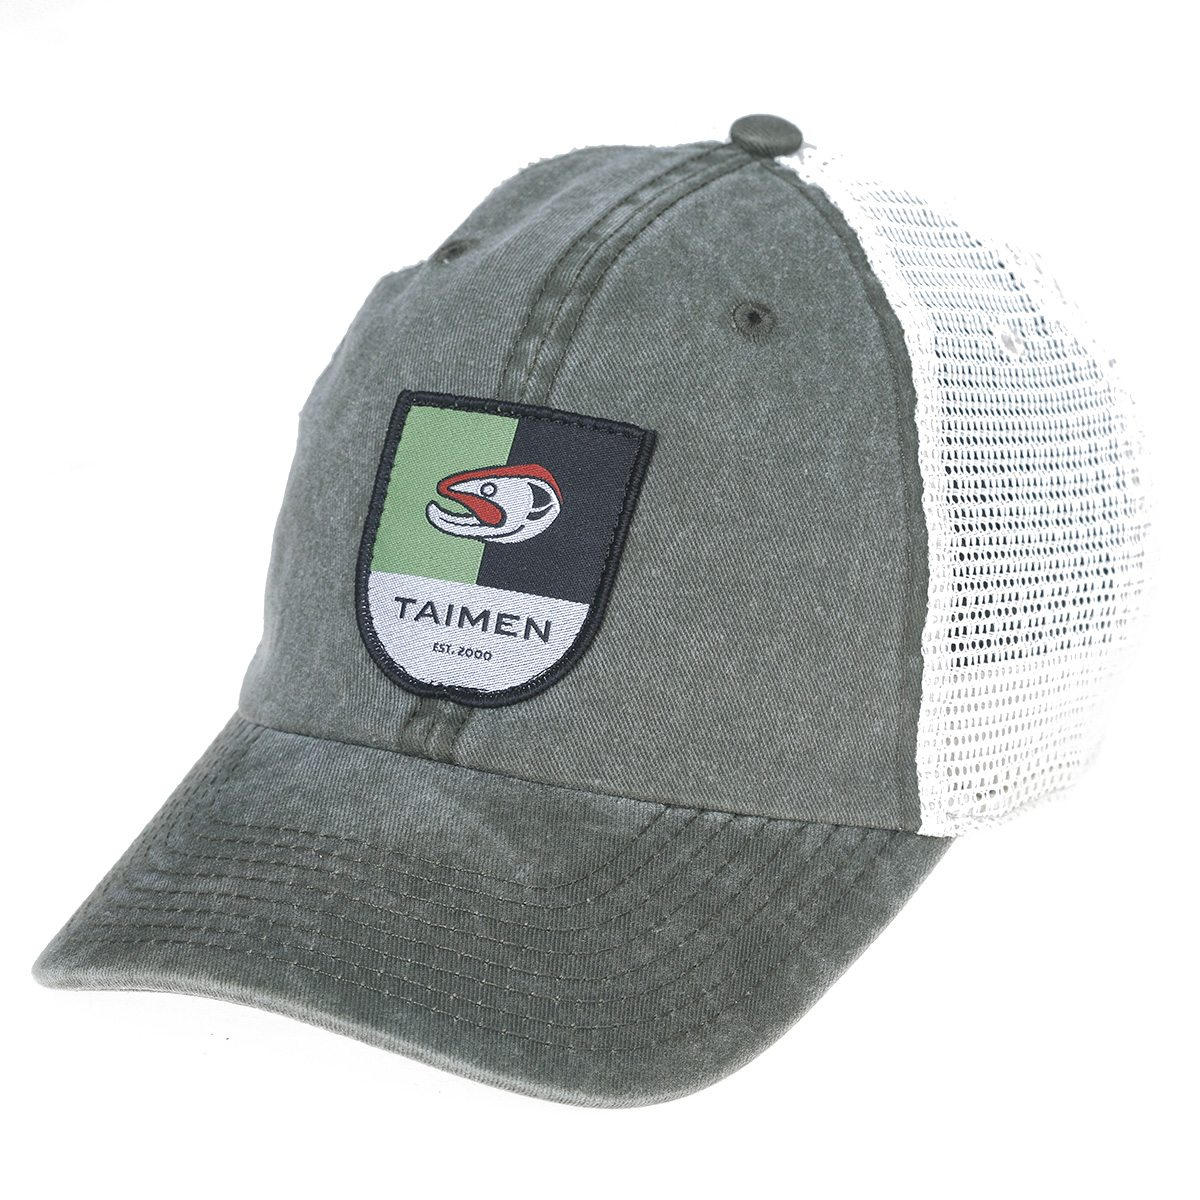 Taimen Fishing Cap. Trucker no. 7